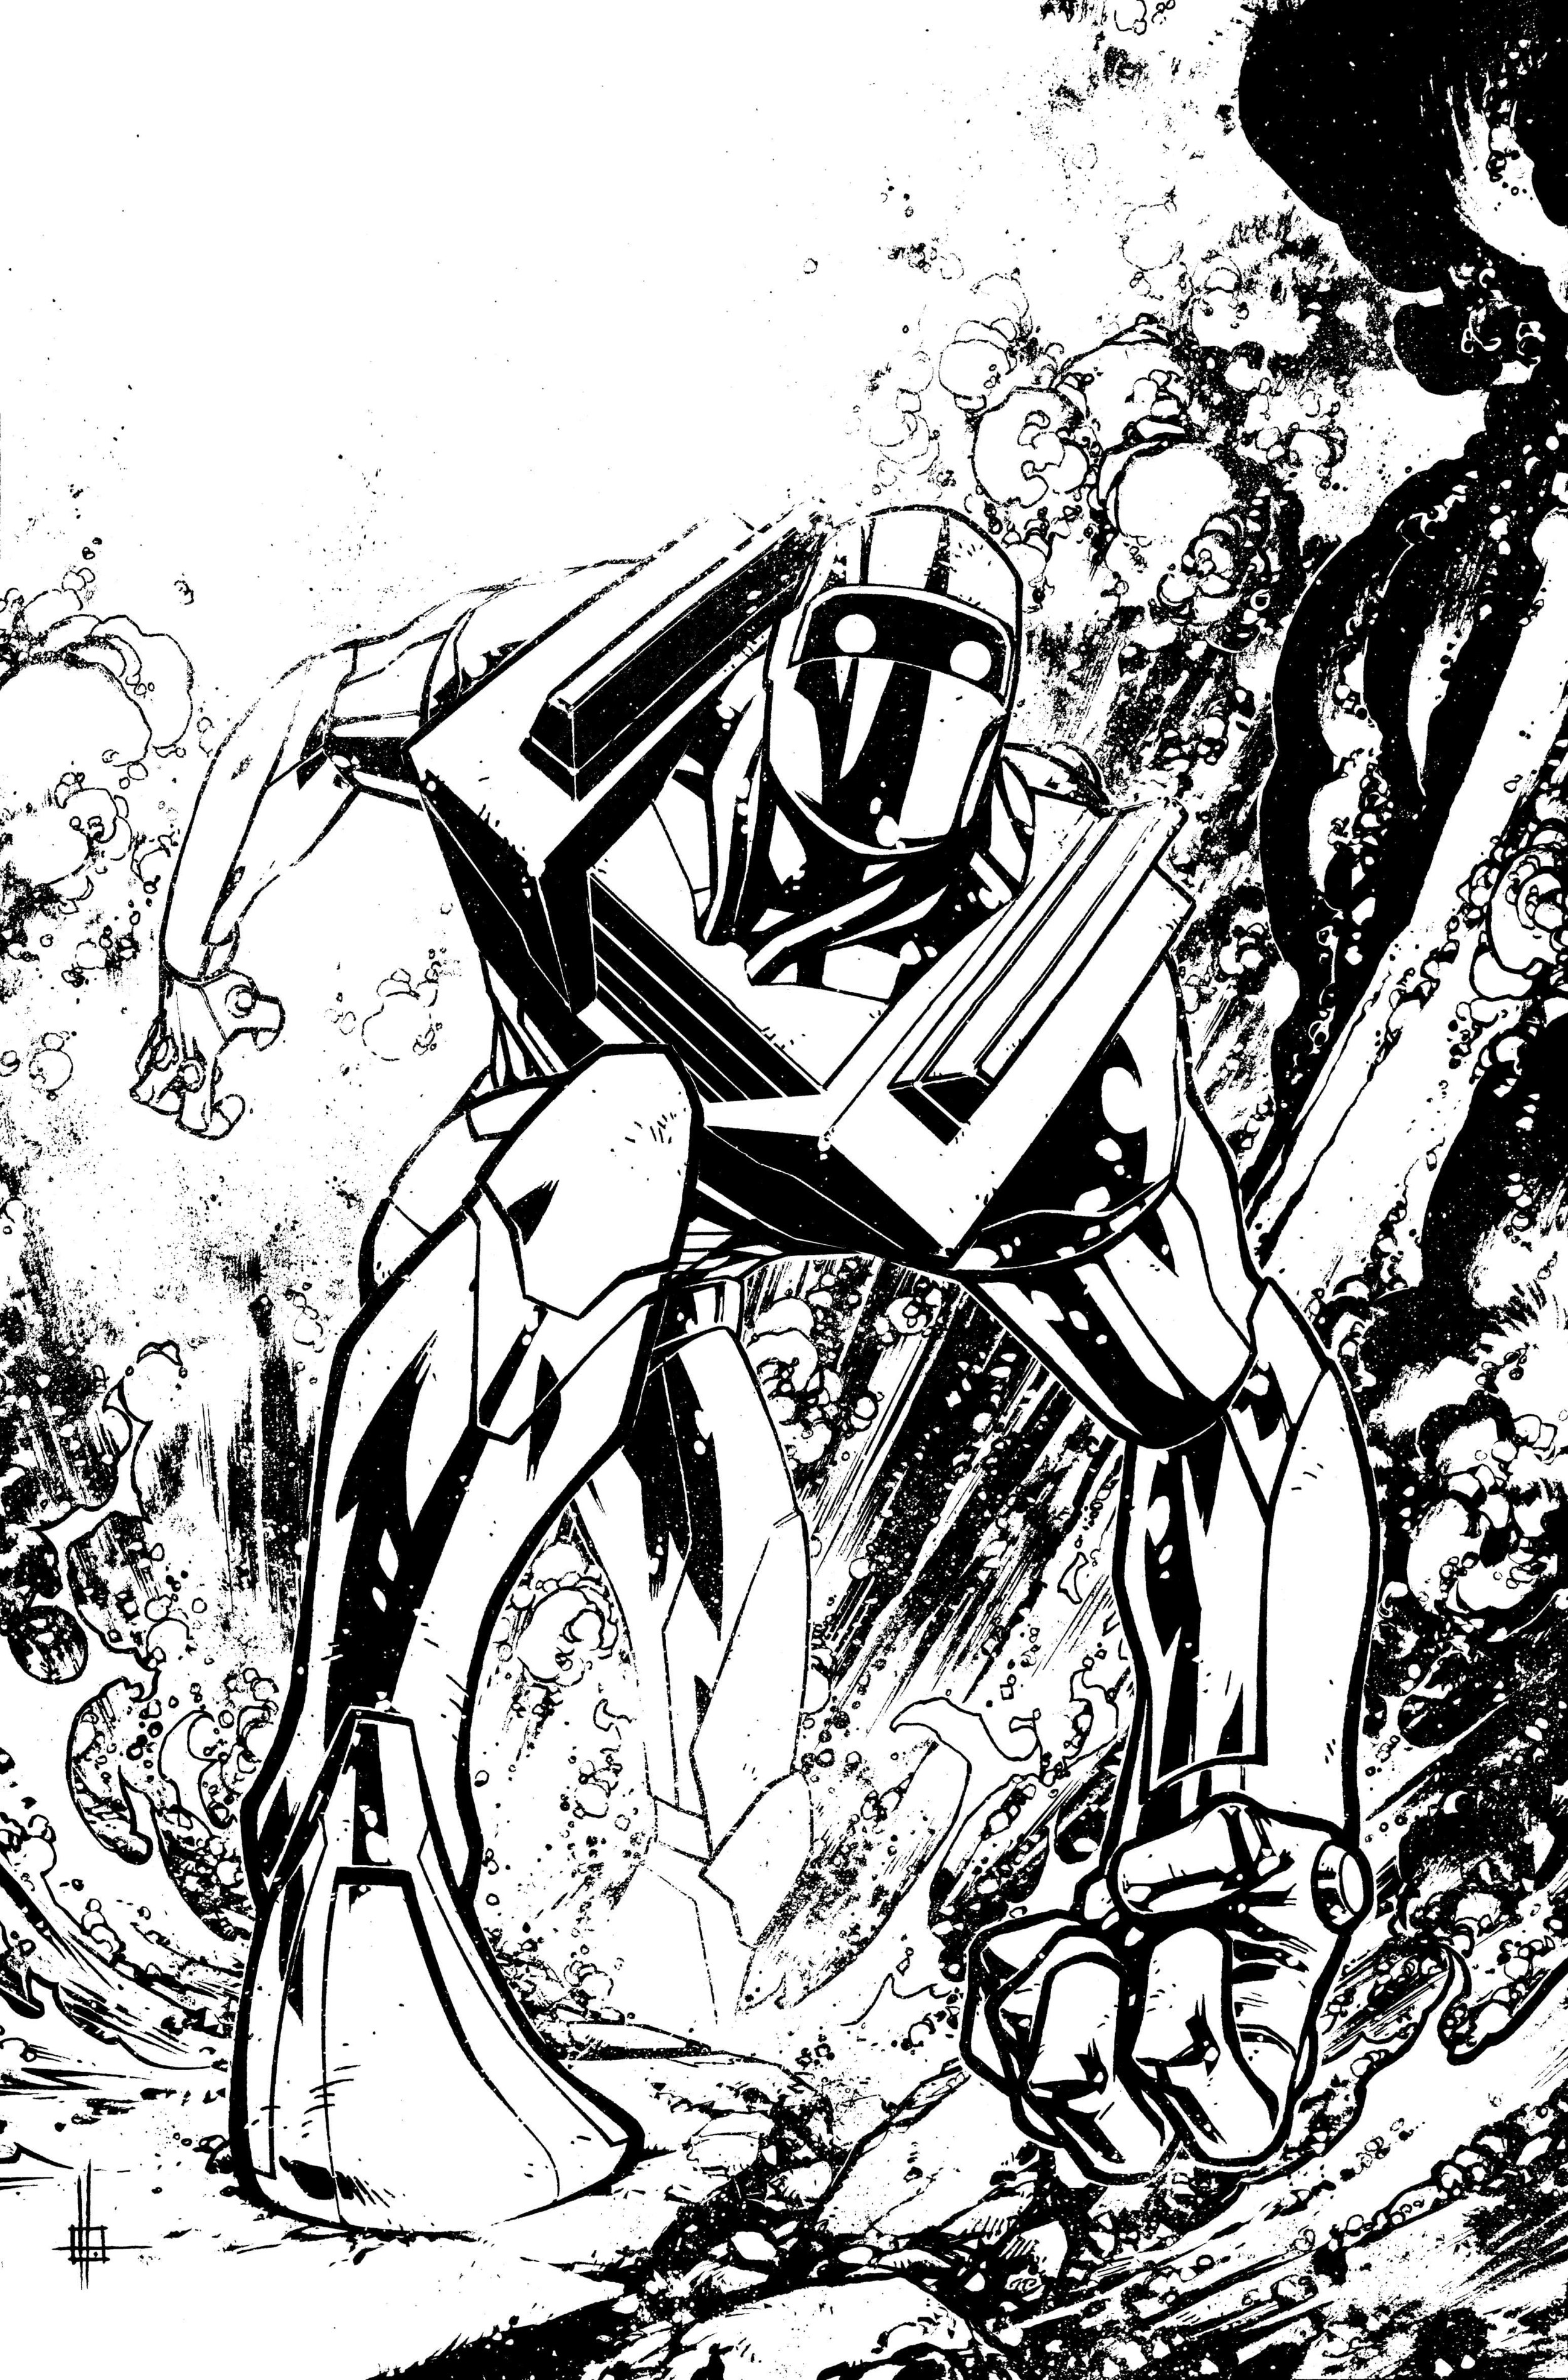 Rom #1 Cover Inks low res.jpg